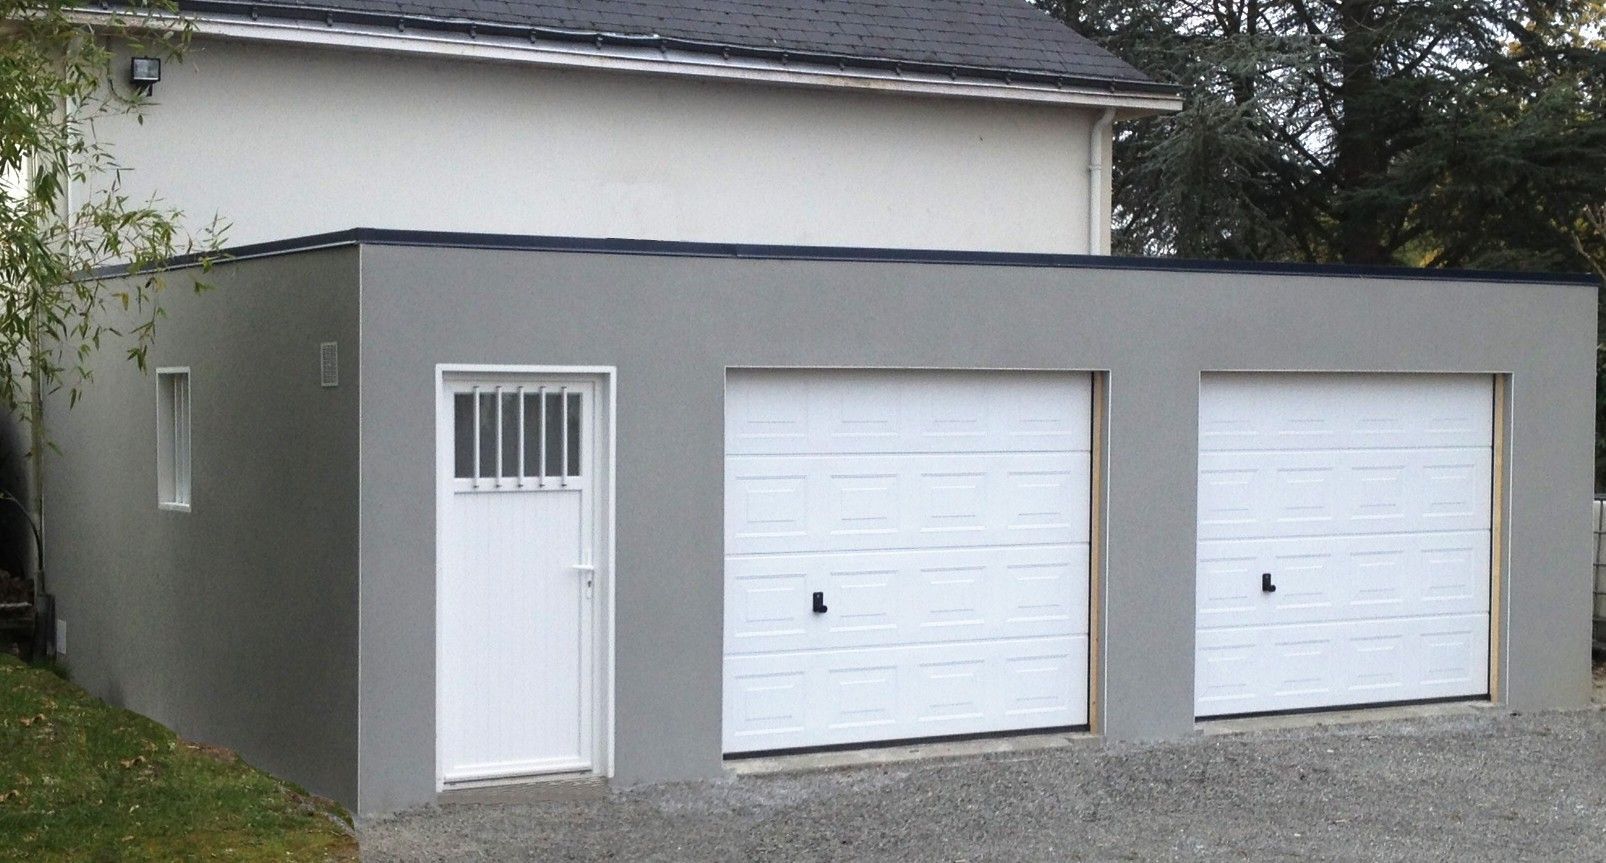 Garage Beton Toit Plat Rraf Info Davidreed Co 2 Storey House Design Garage 2 Storey House